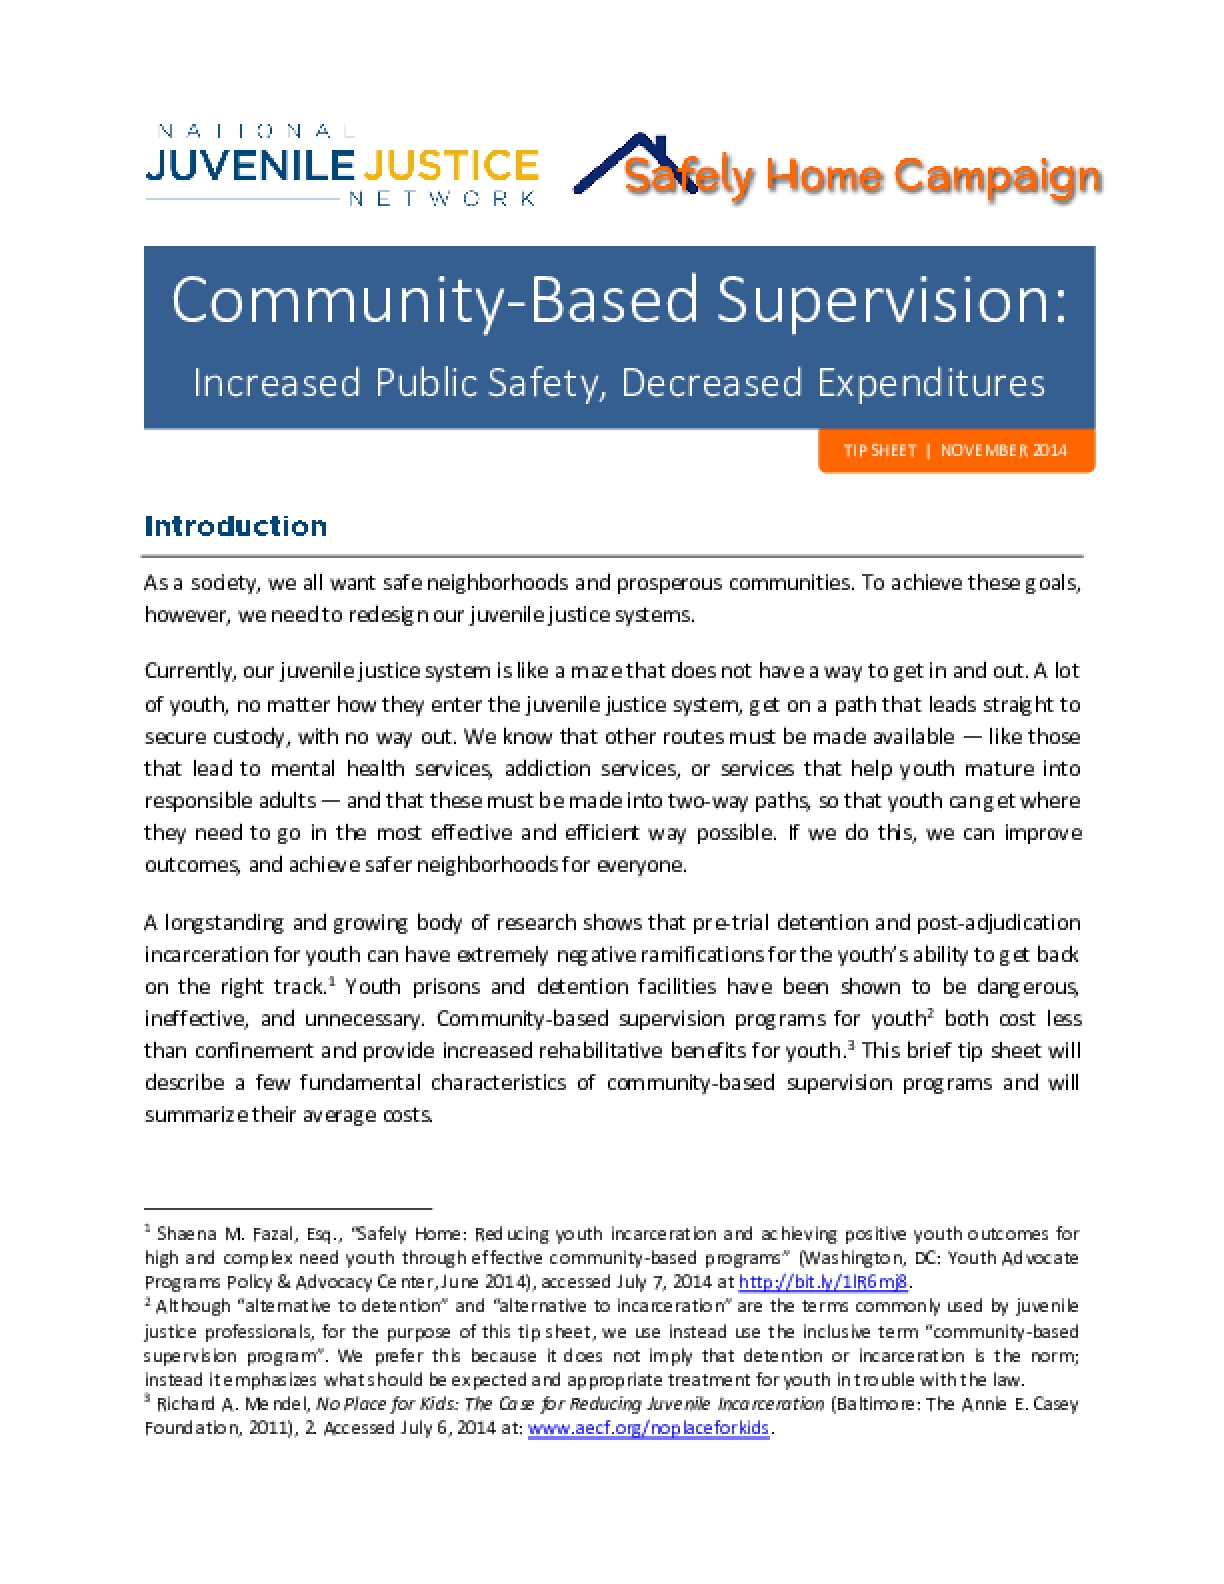 Community-Based Supervision: Increased Public Safety, Decreased Expenditures